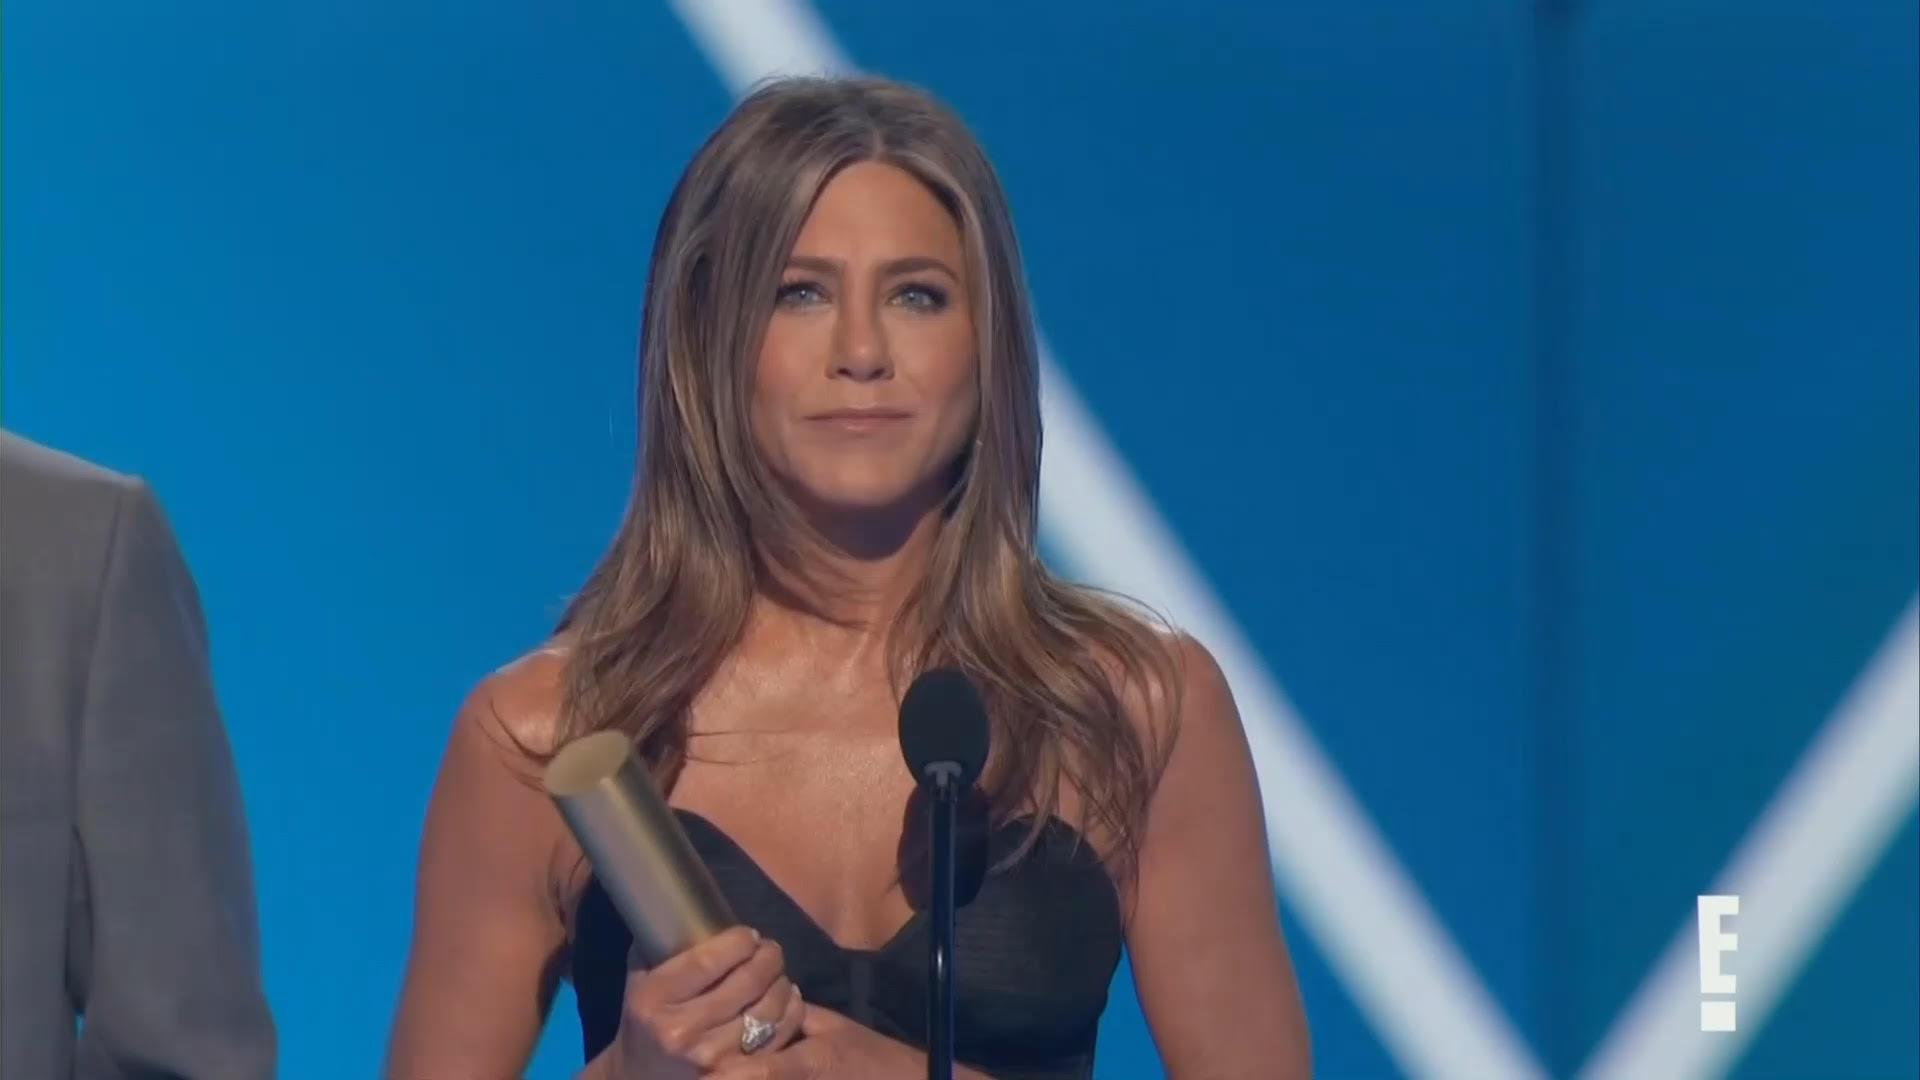 Jennifer Aniston's People's Choice Awards speech brings fans to tears